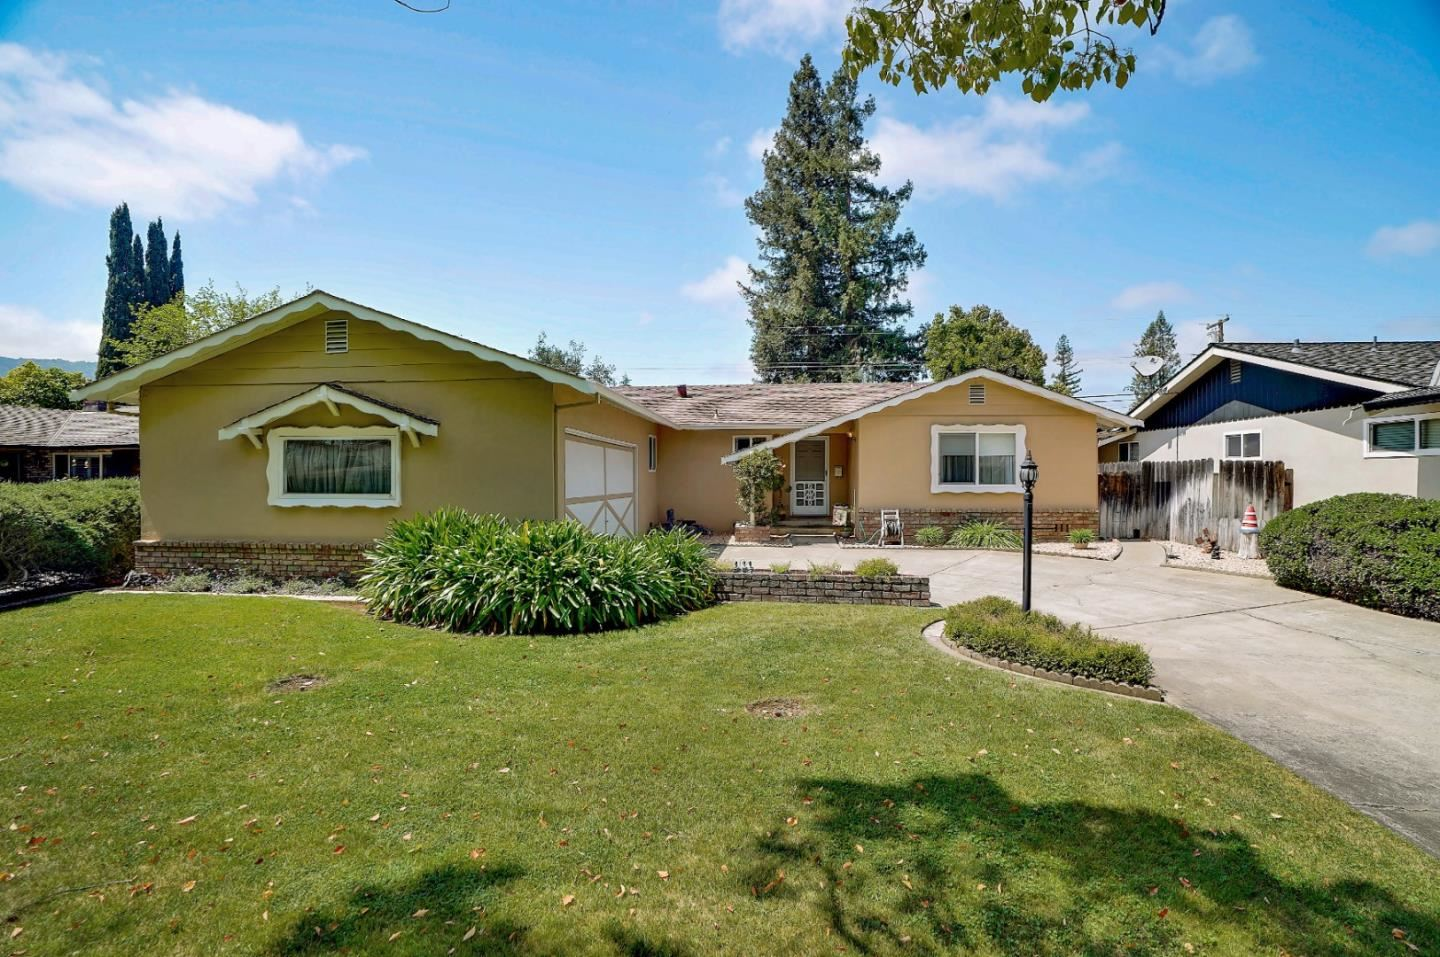 Photo for 7651 Filice Drive, GILROY, CA 95020 (MLS # ML81839602)